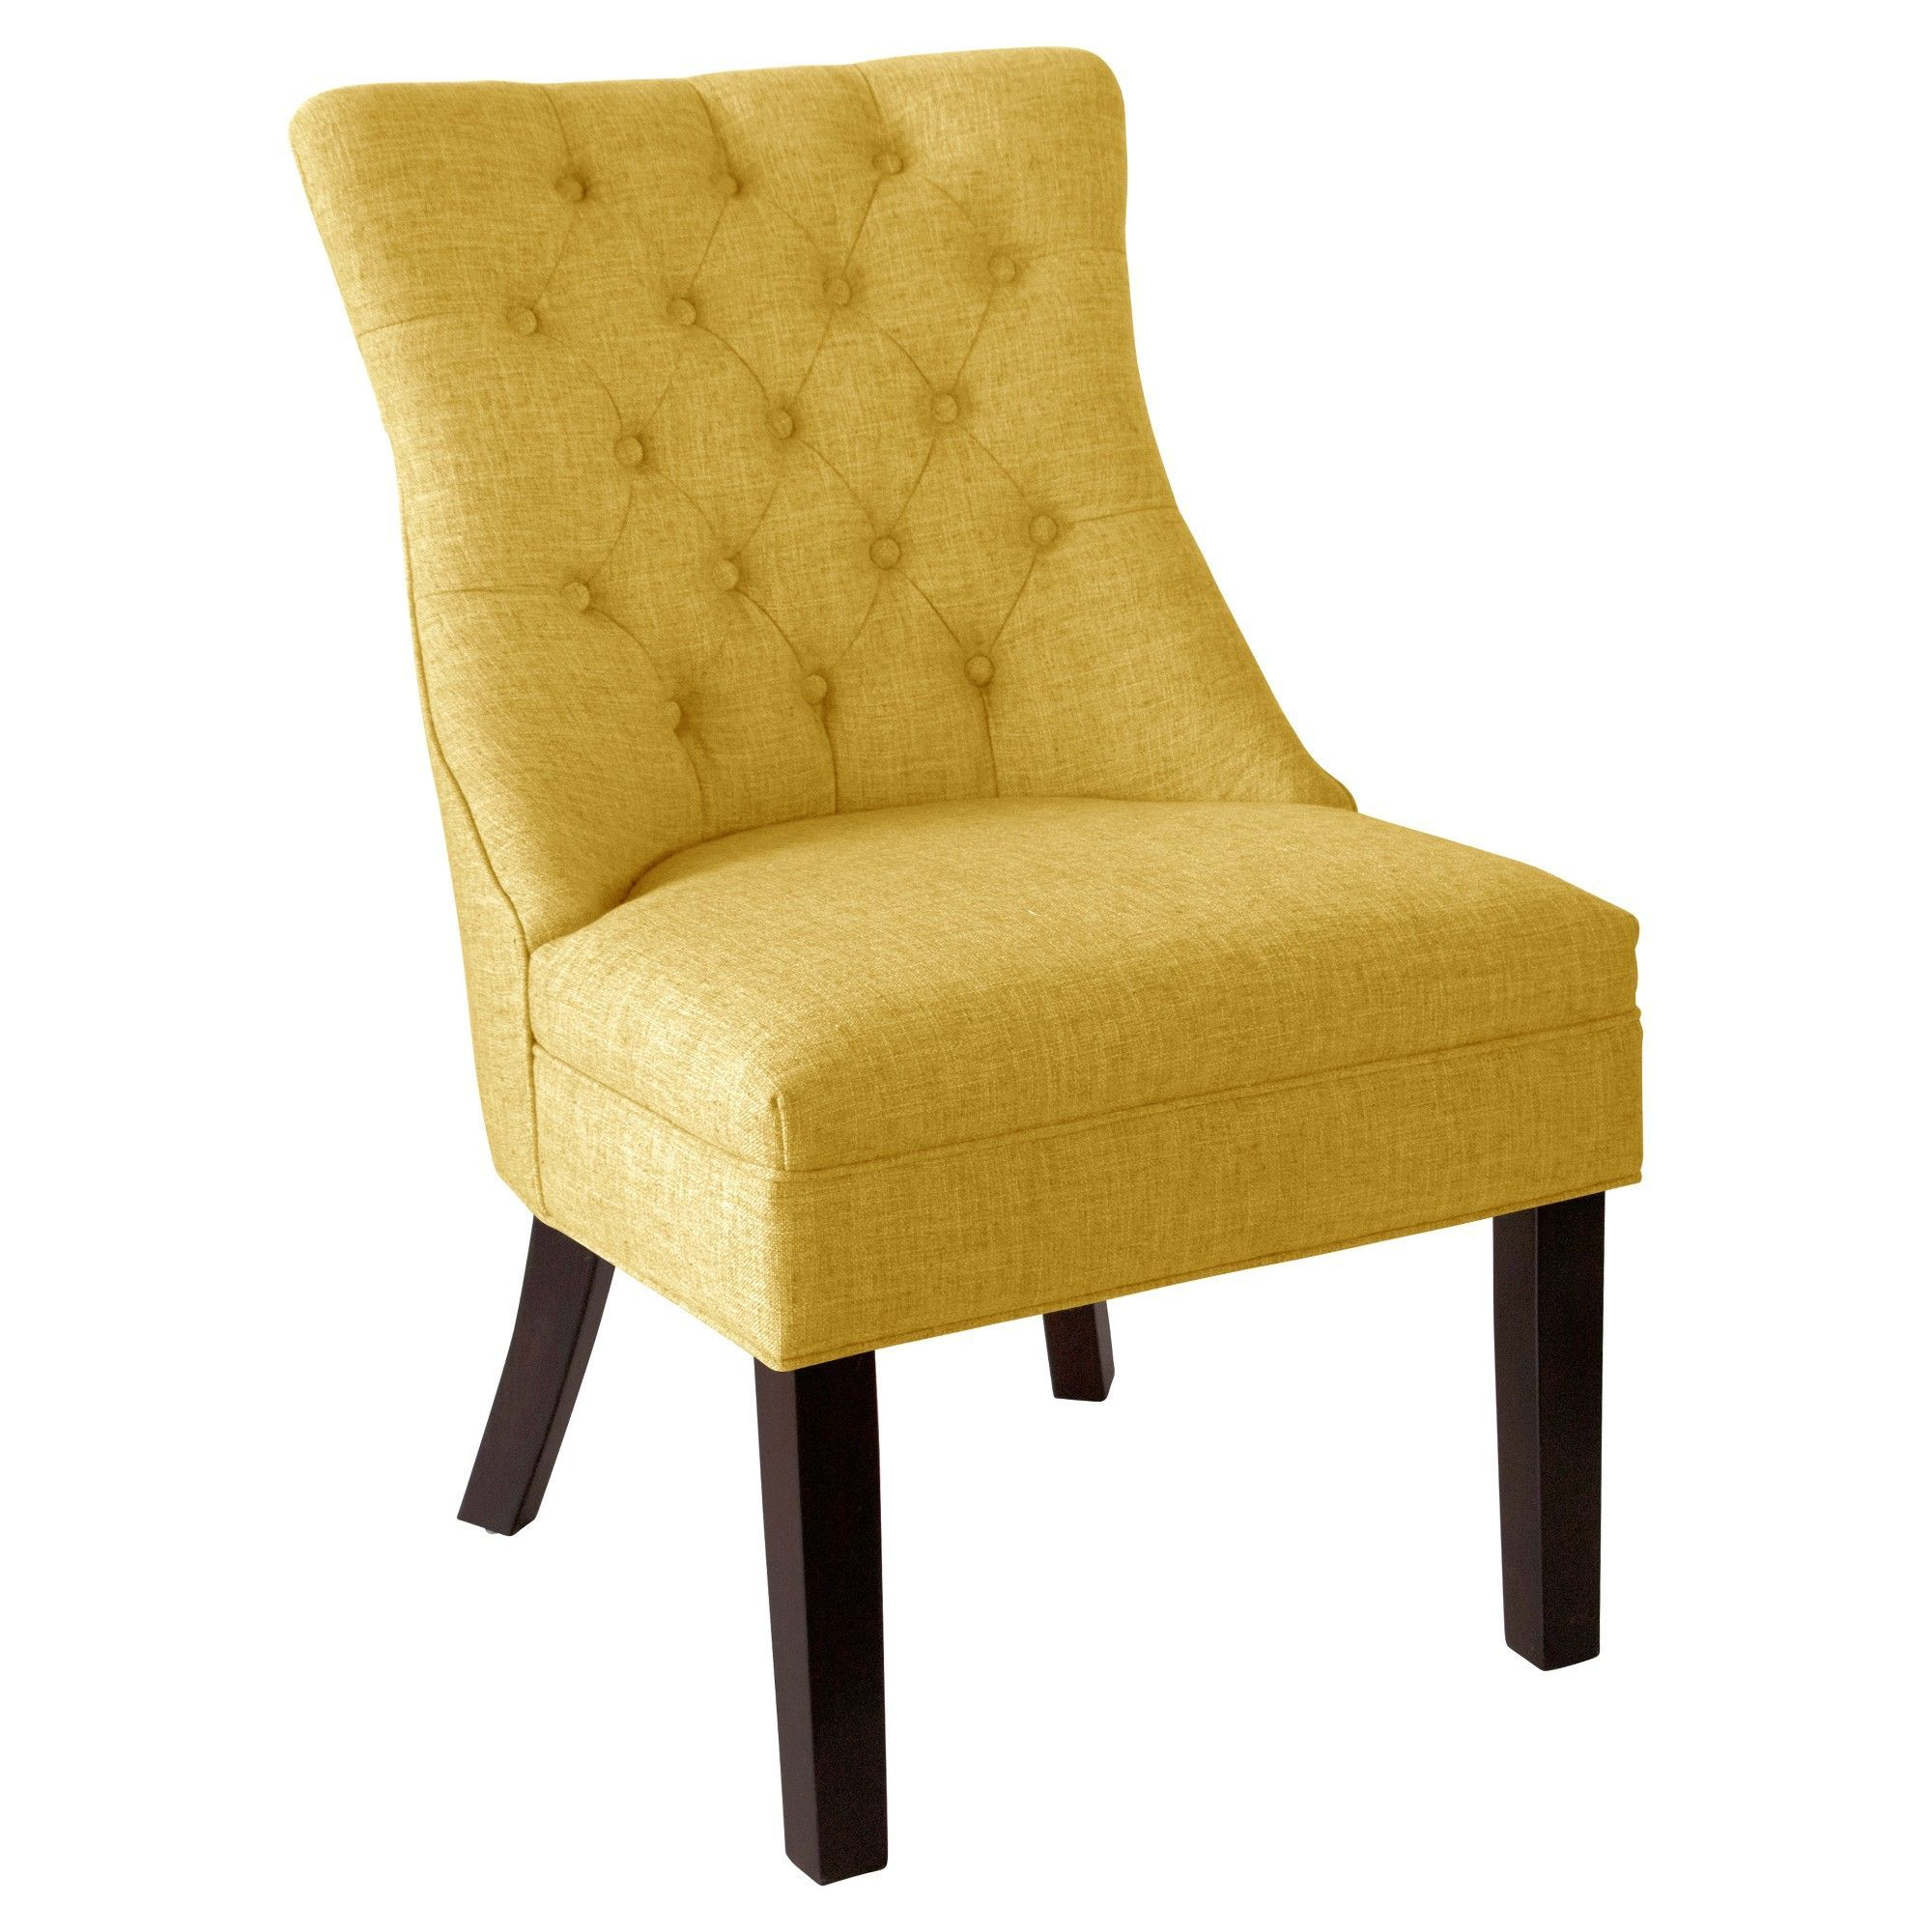 Accent Chairs Yellow Threshold In 2019 Accent Chairs